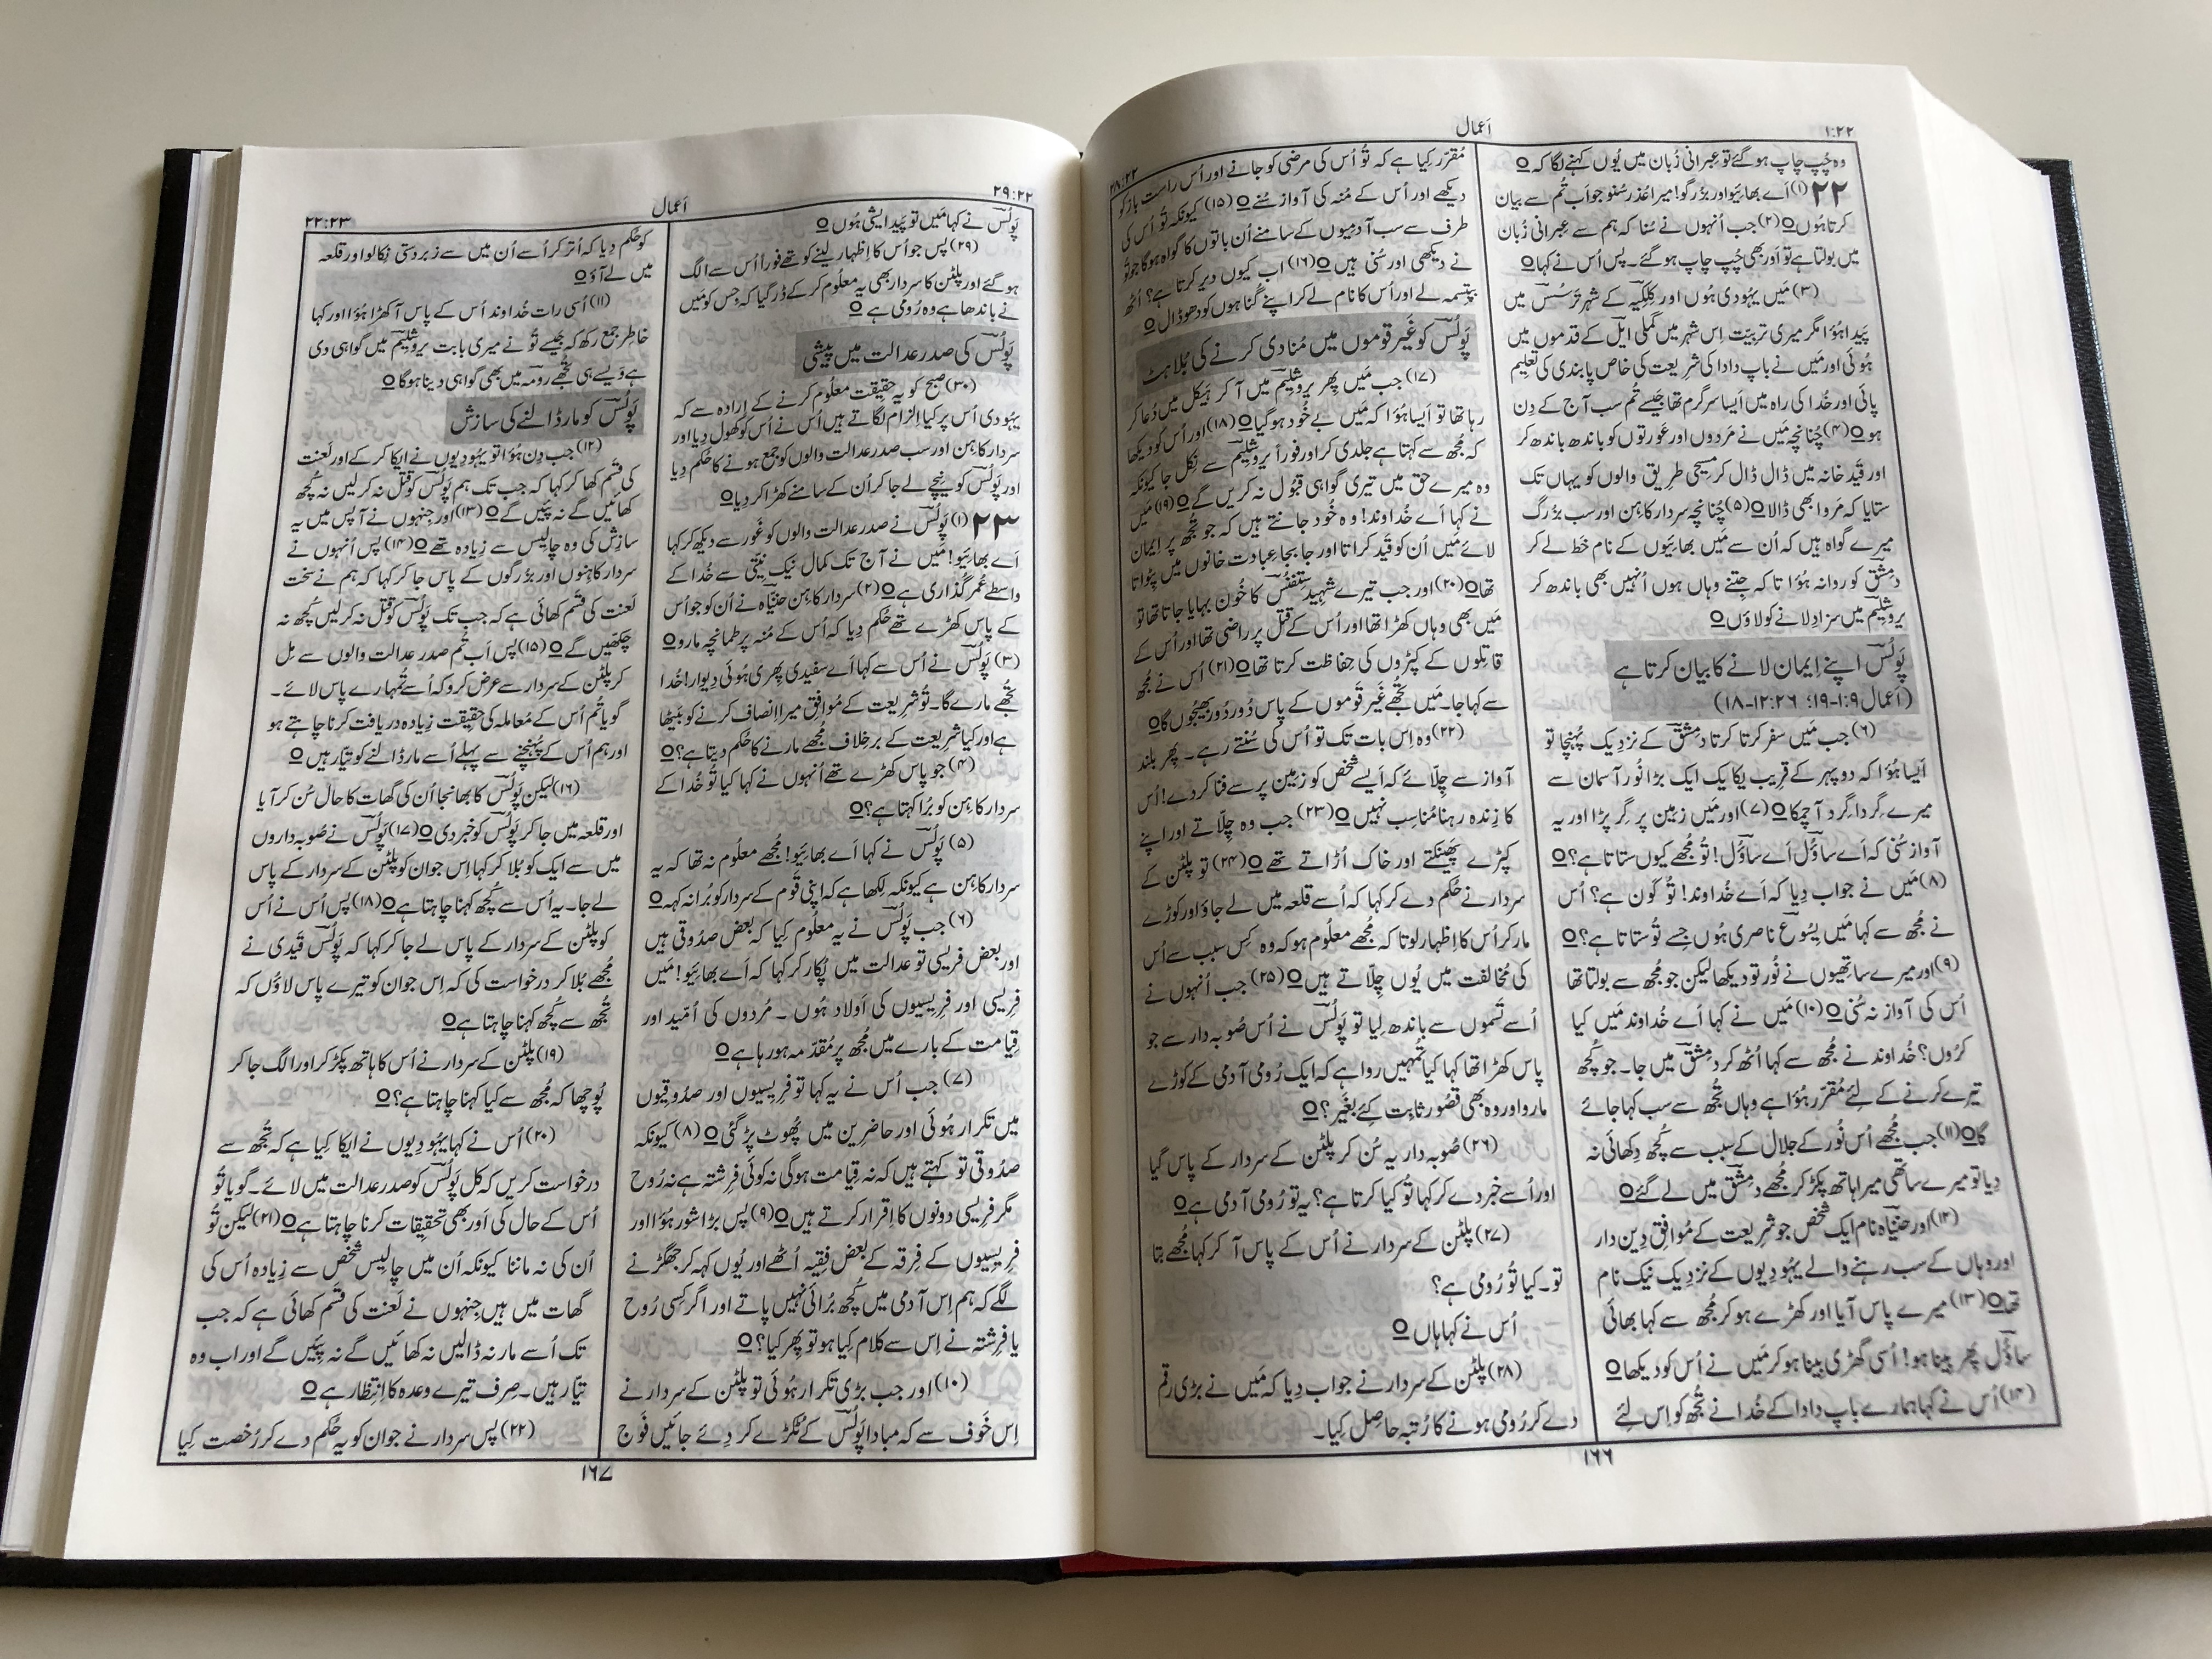 holy-bible-in-urdu-language-revised-version-pakistan-bible-society-2019-hardcover-black-15-.jpg